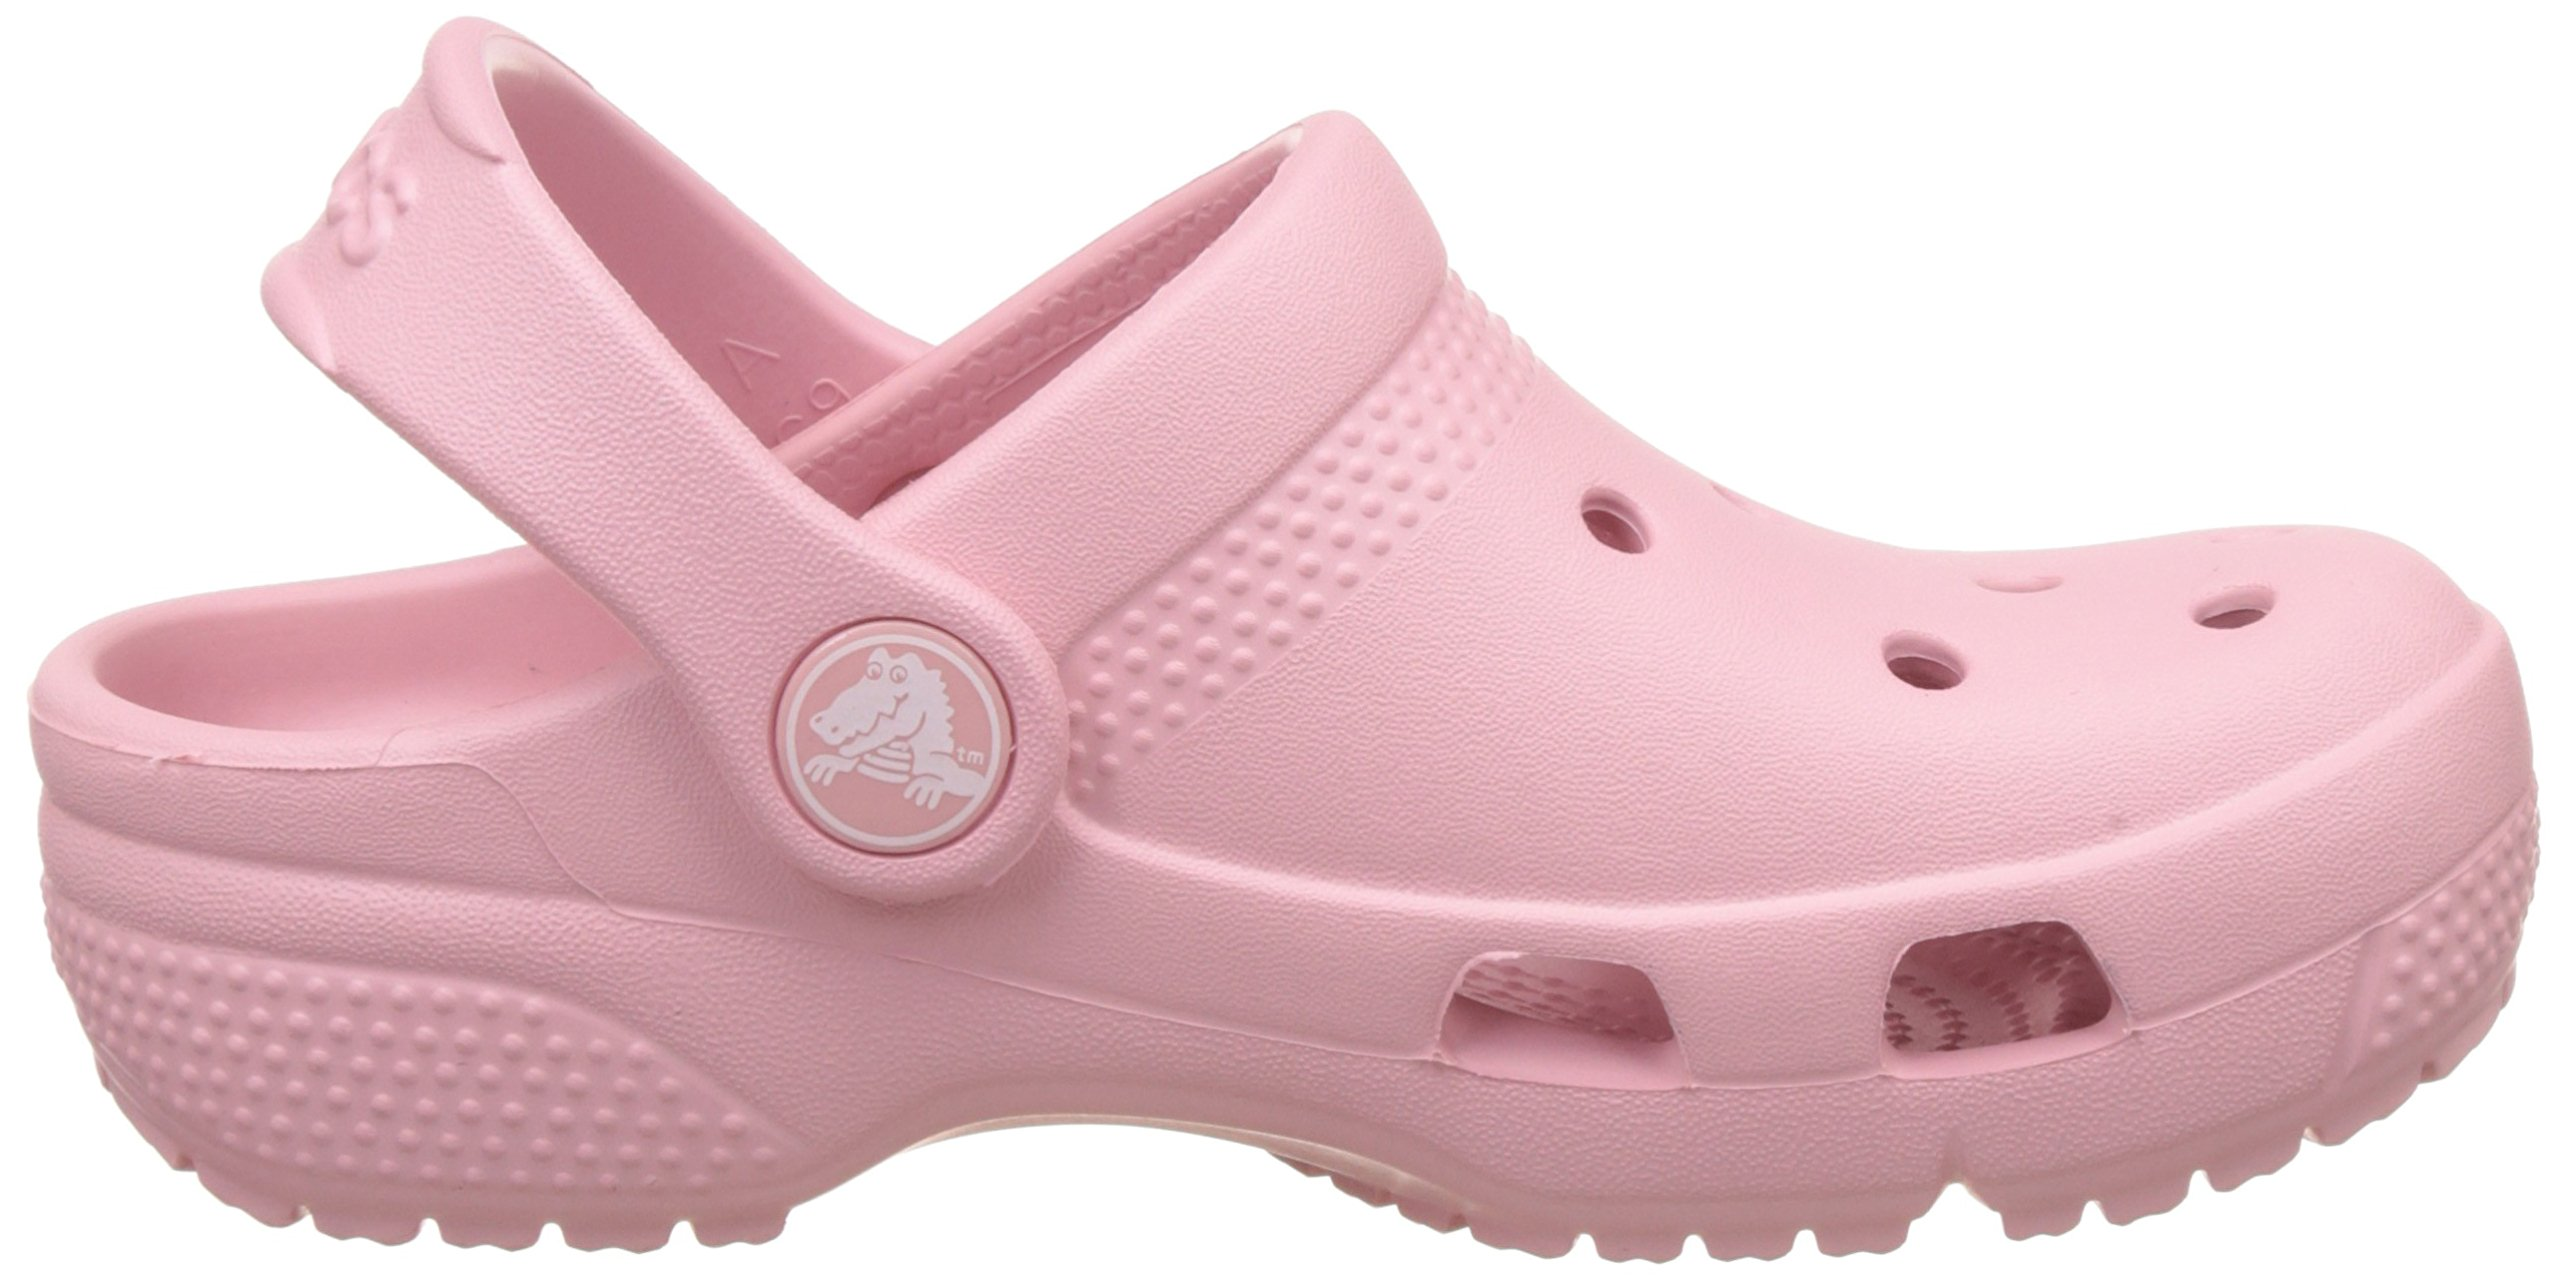 Crocs Kids Unisex Coast Clog (Toddler/Little Kid) Petal Pink 11 M US Little Kid by Crocs (Image #6)